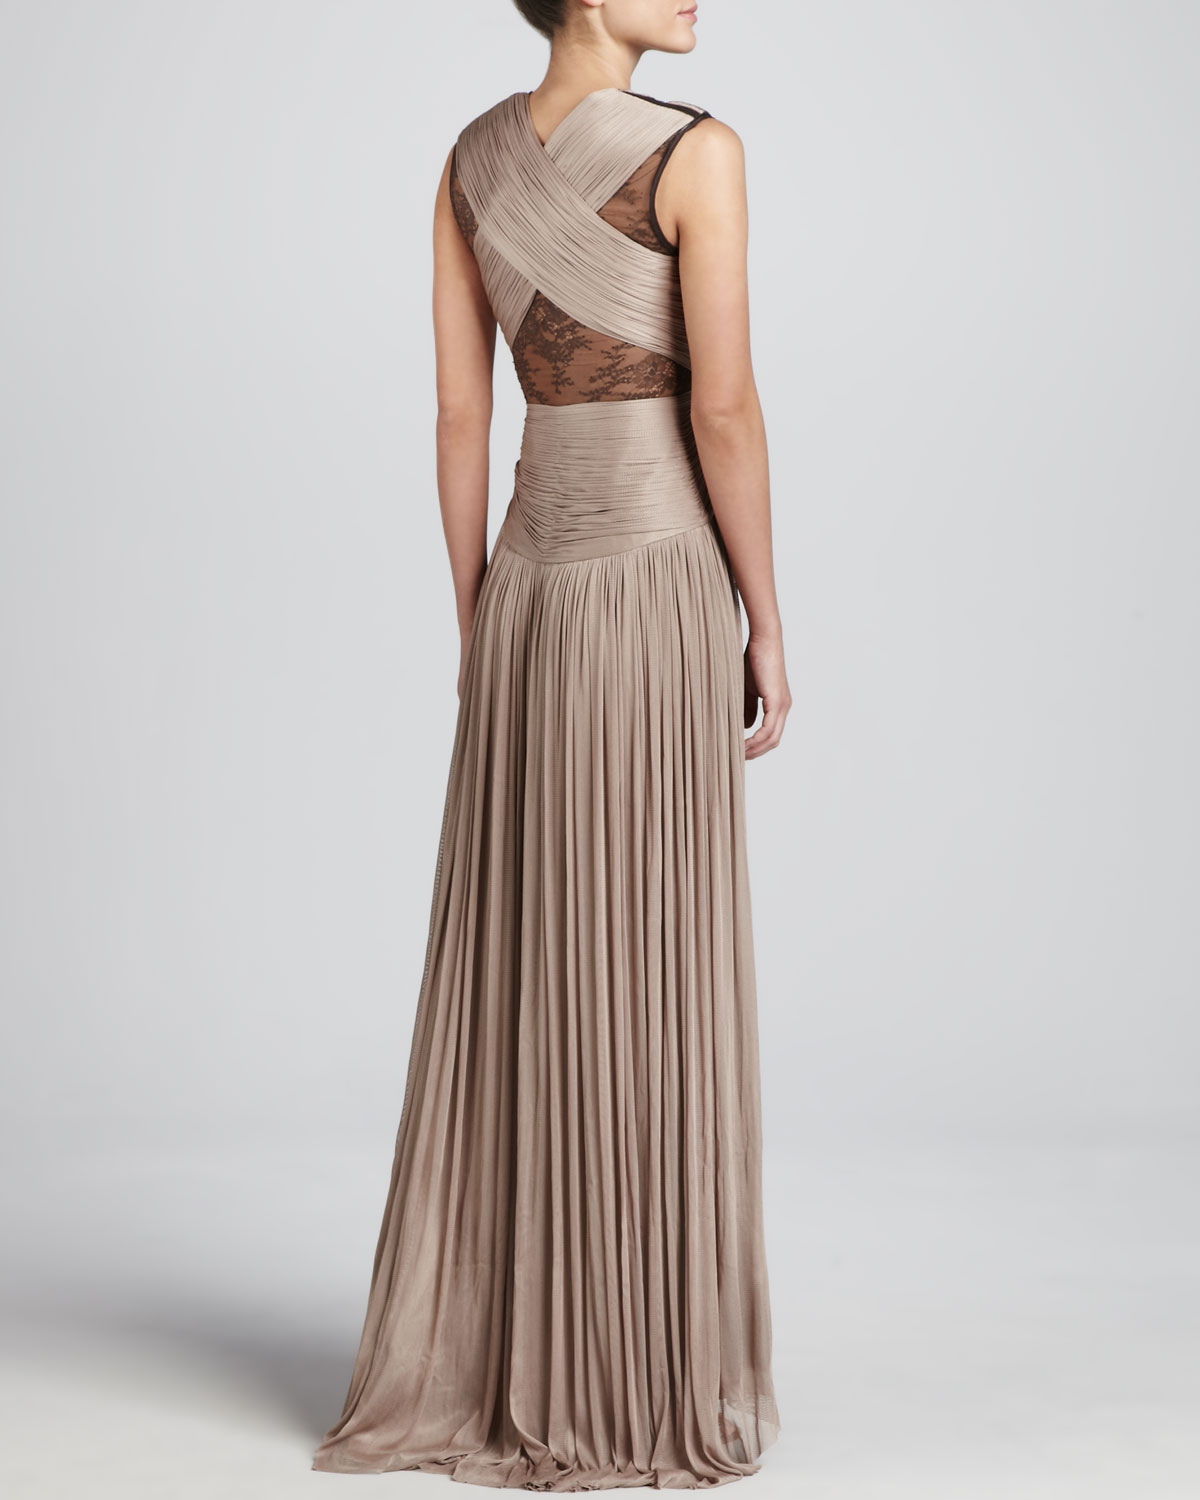 Lyst - Catherine Deane Mercury Pleated Laceinset Gown in Brown